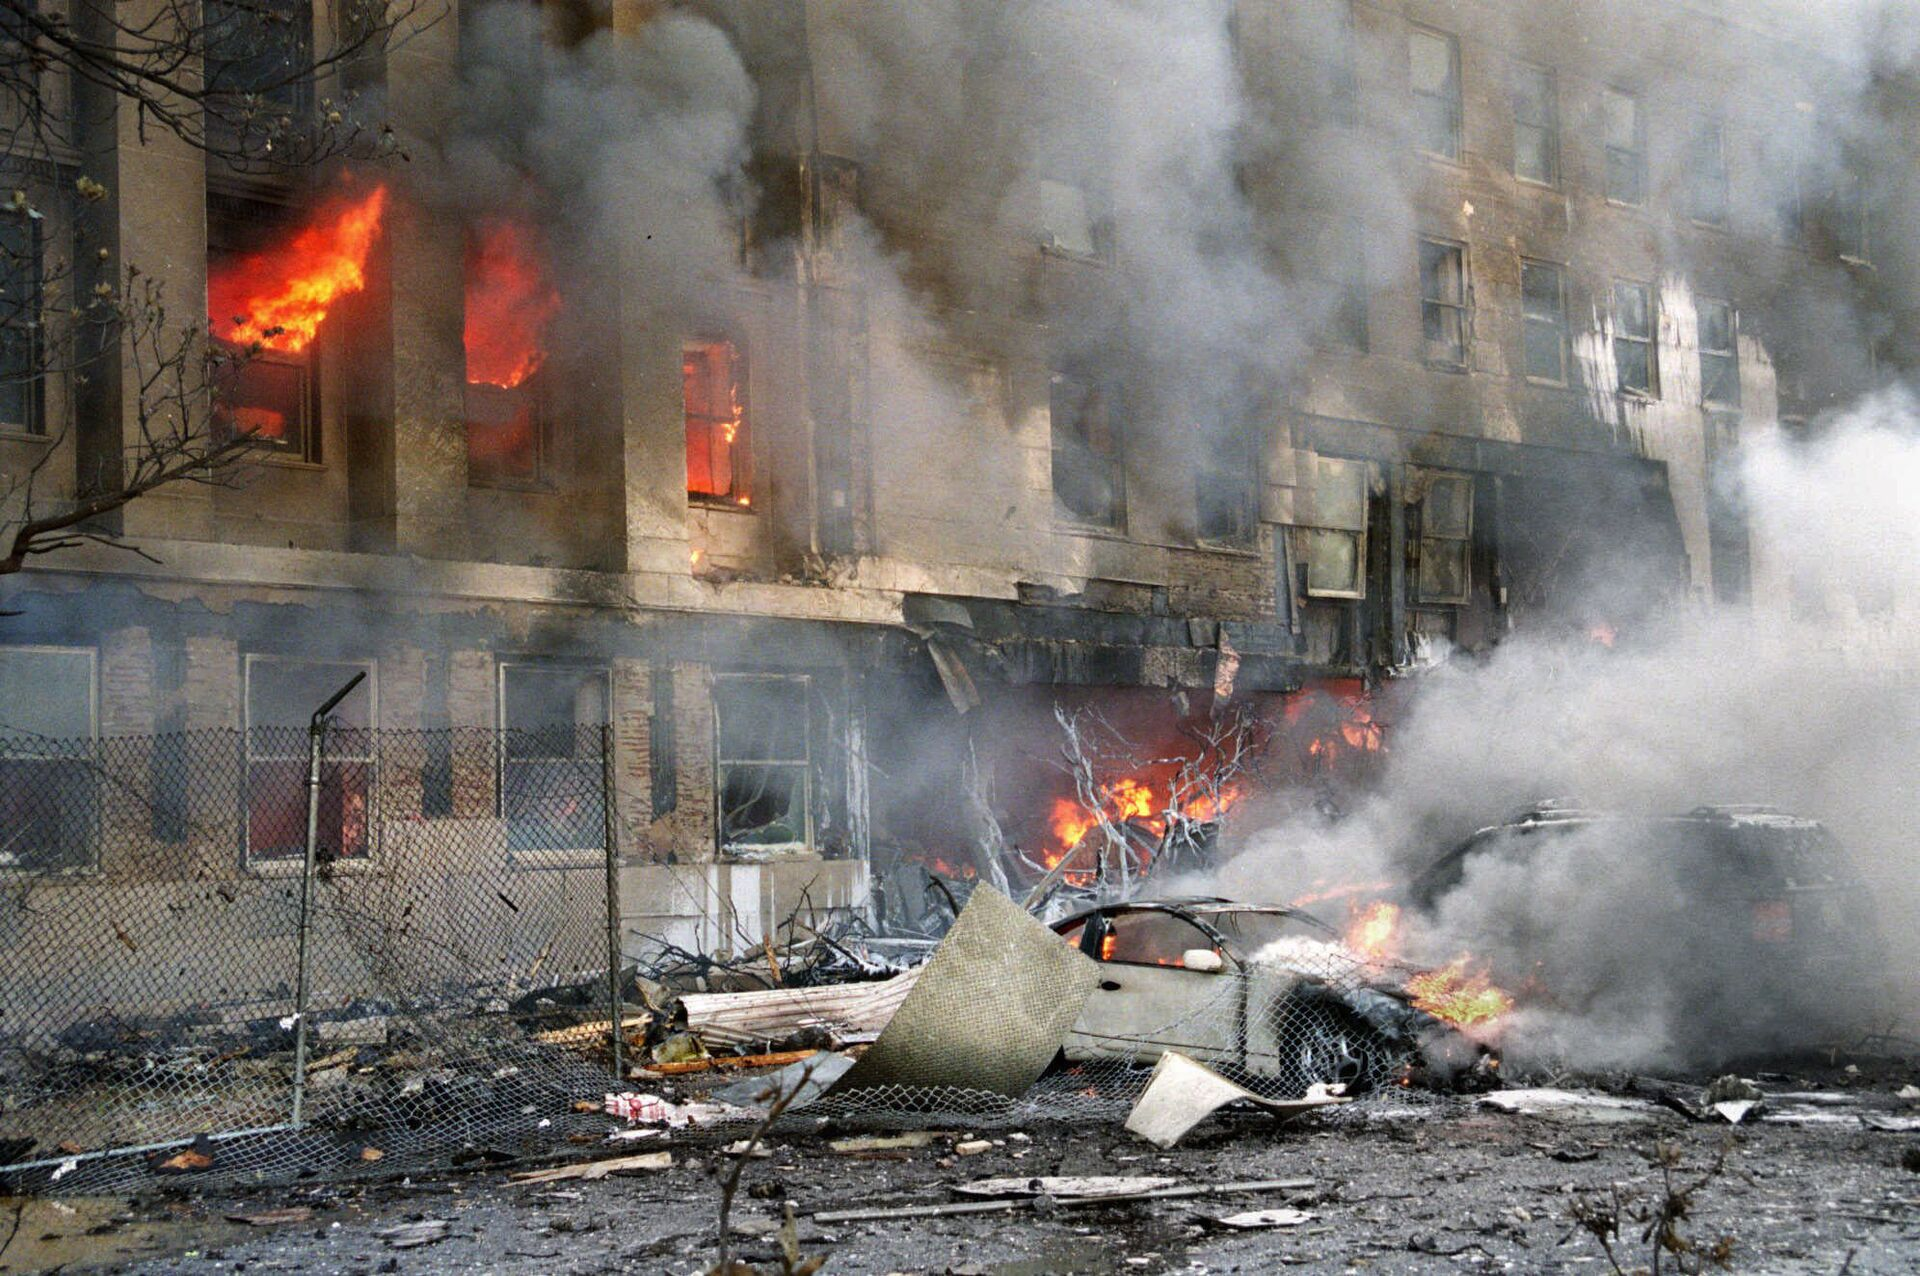 In this 11 September 2001 file photo, damage to the outer ring of the Pentagon is shown after a hijacked airliner crashed into the building - Sputnik International, 1920, 07.09.2021